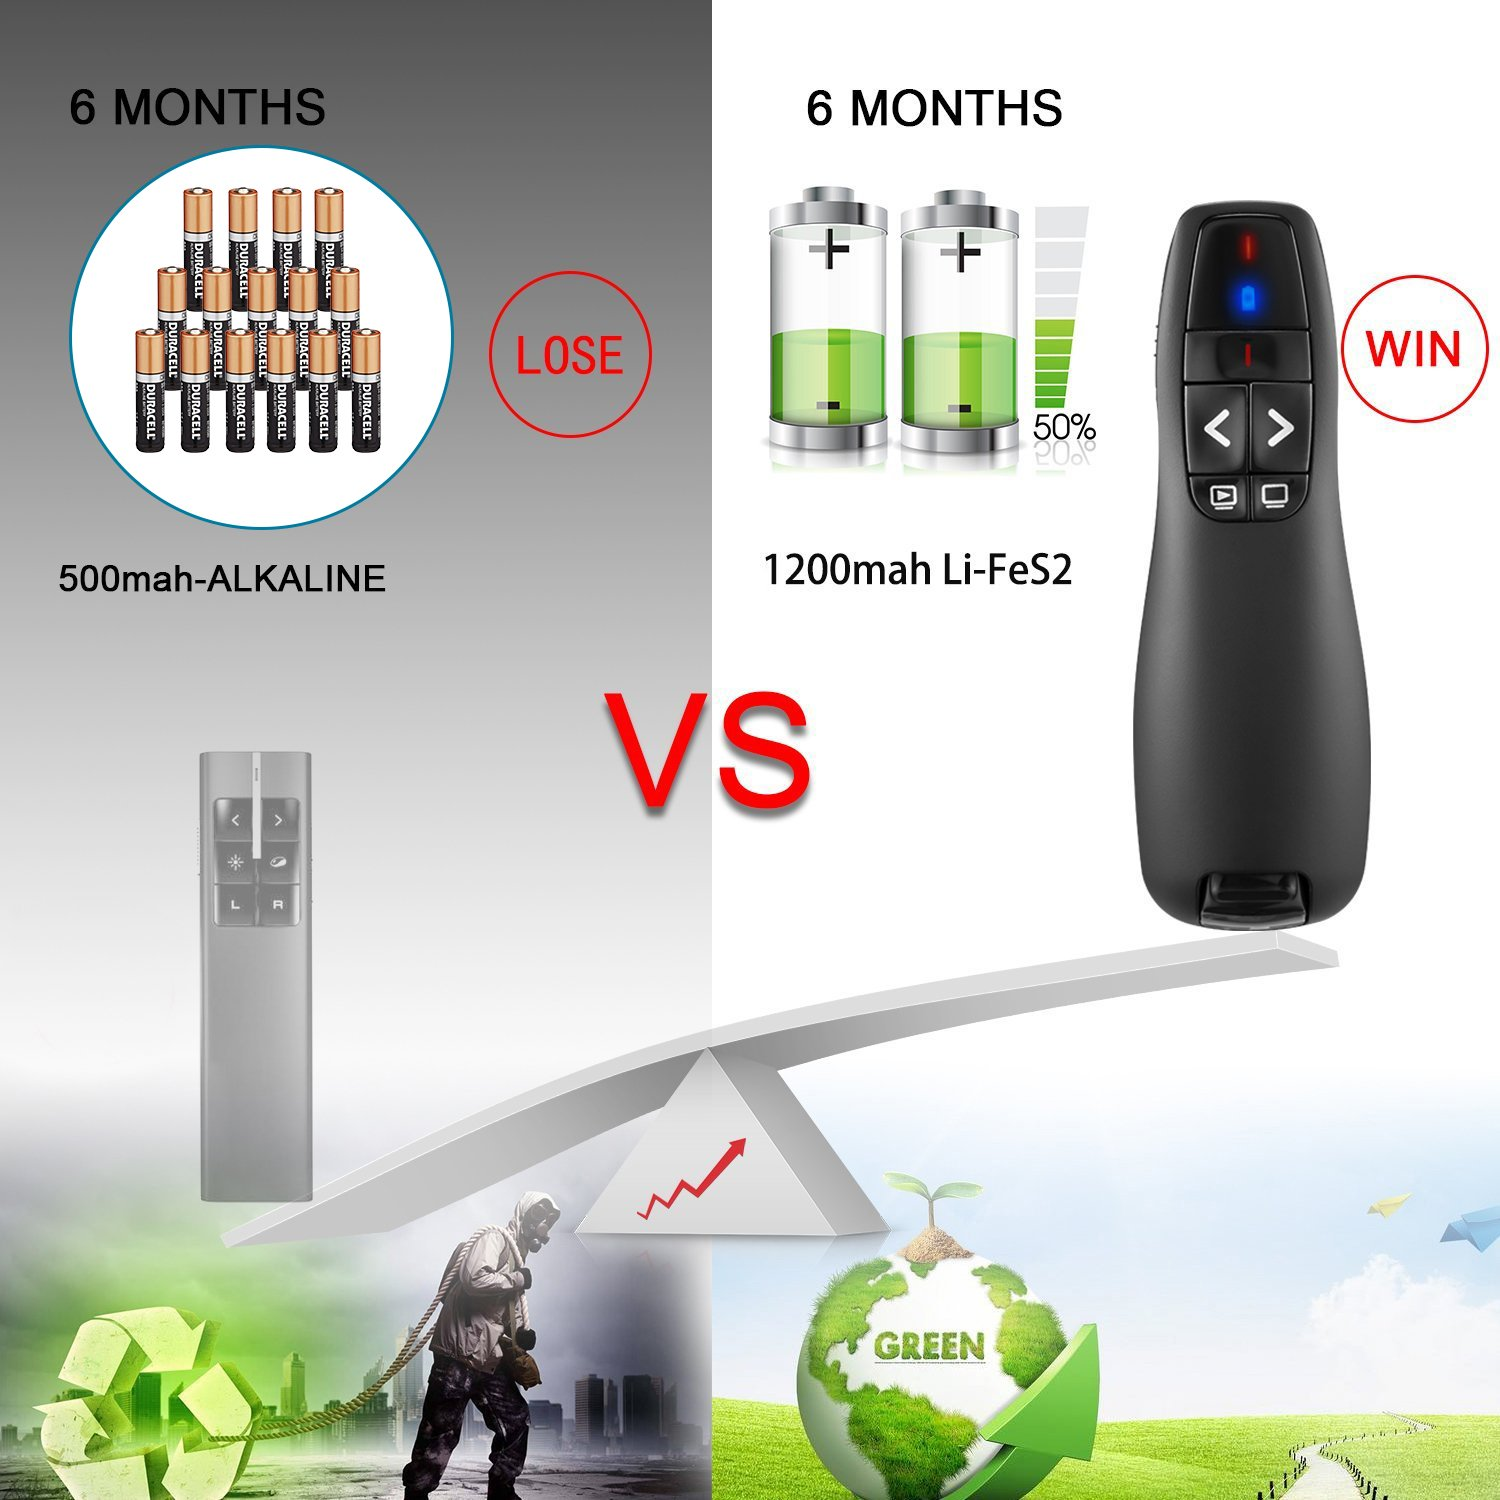 Wireless Presenter with Laser Pointer, 2.4GHZ Support Topic Speech and Super URL, Powerpoint Presentation Remotes R400-Bollaer, USB Control for Teaching and Meeting by BOLLAER (Image #2)